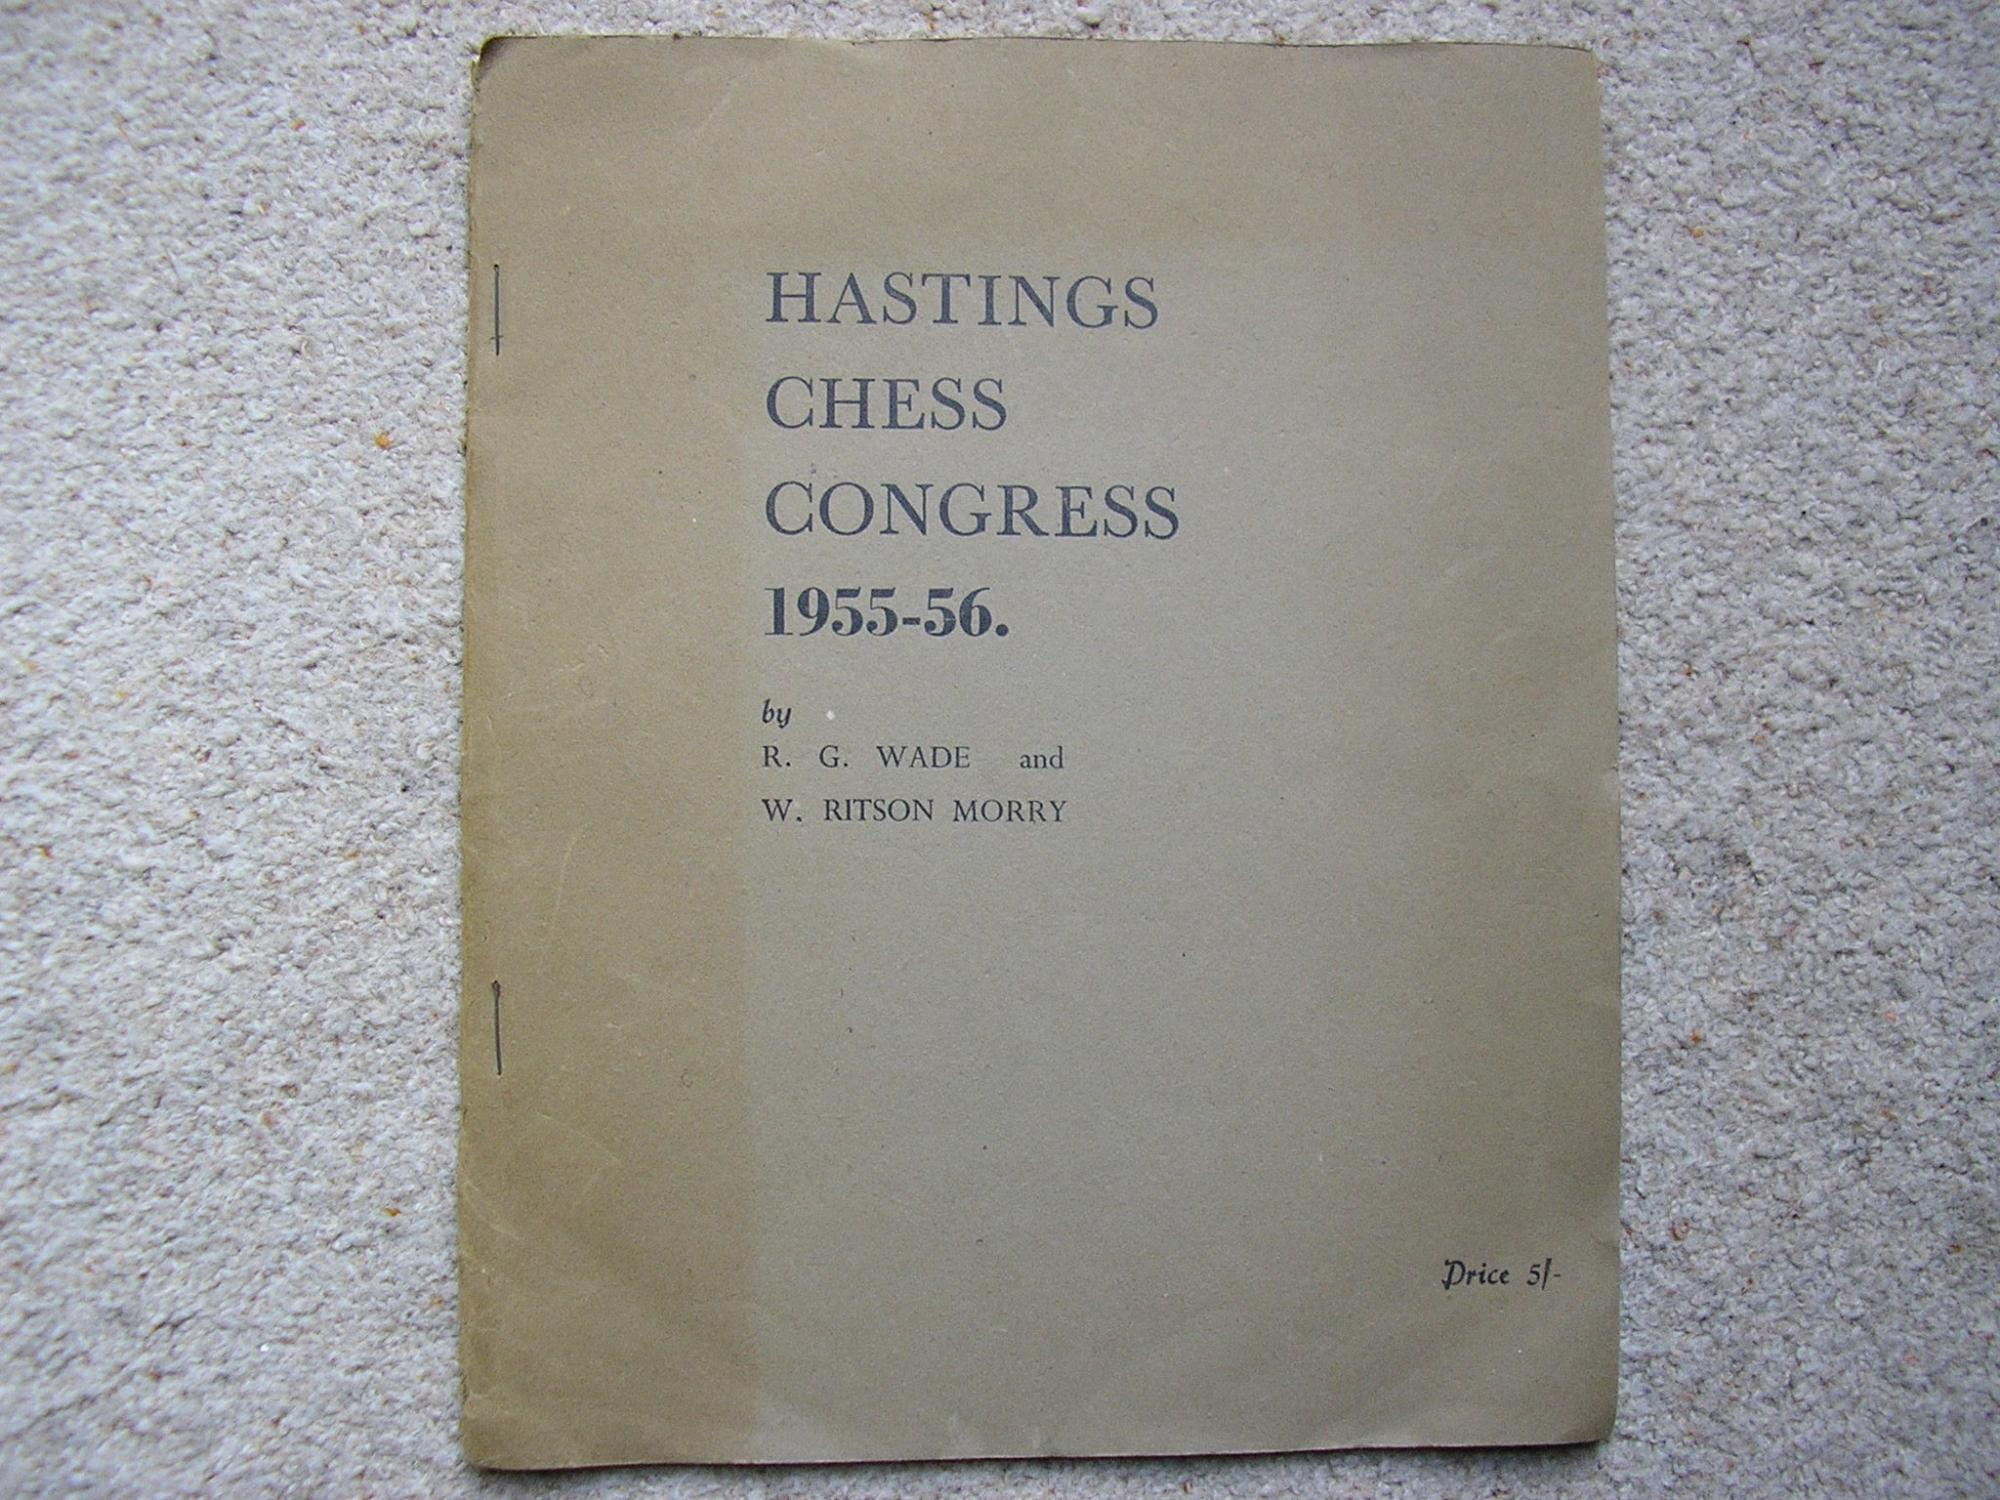 Hastings Chess Congress 1955-56, RG Wade & W. Ritson Morry, En Passant Chess Publications